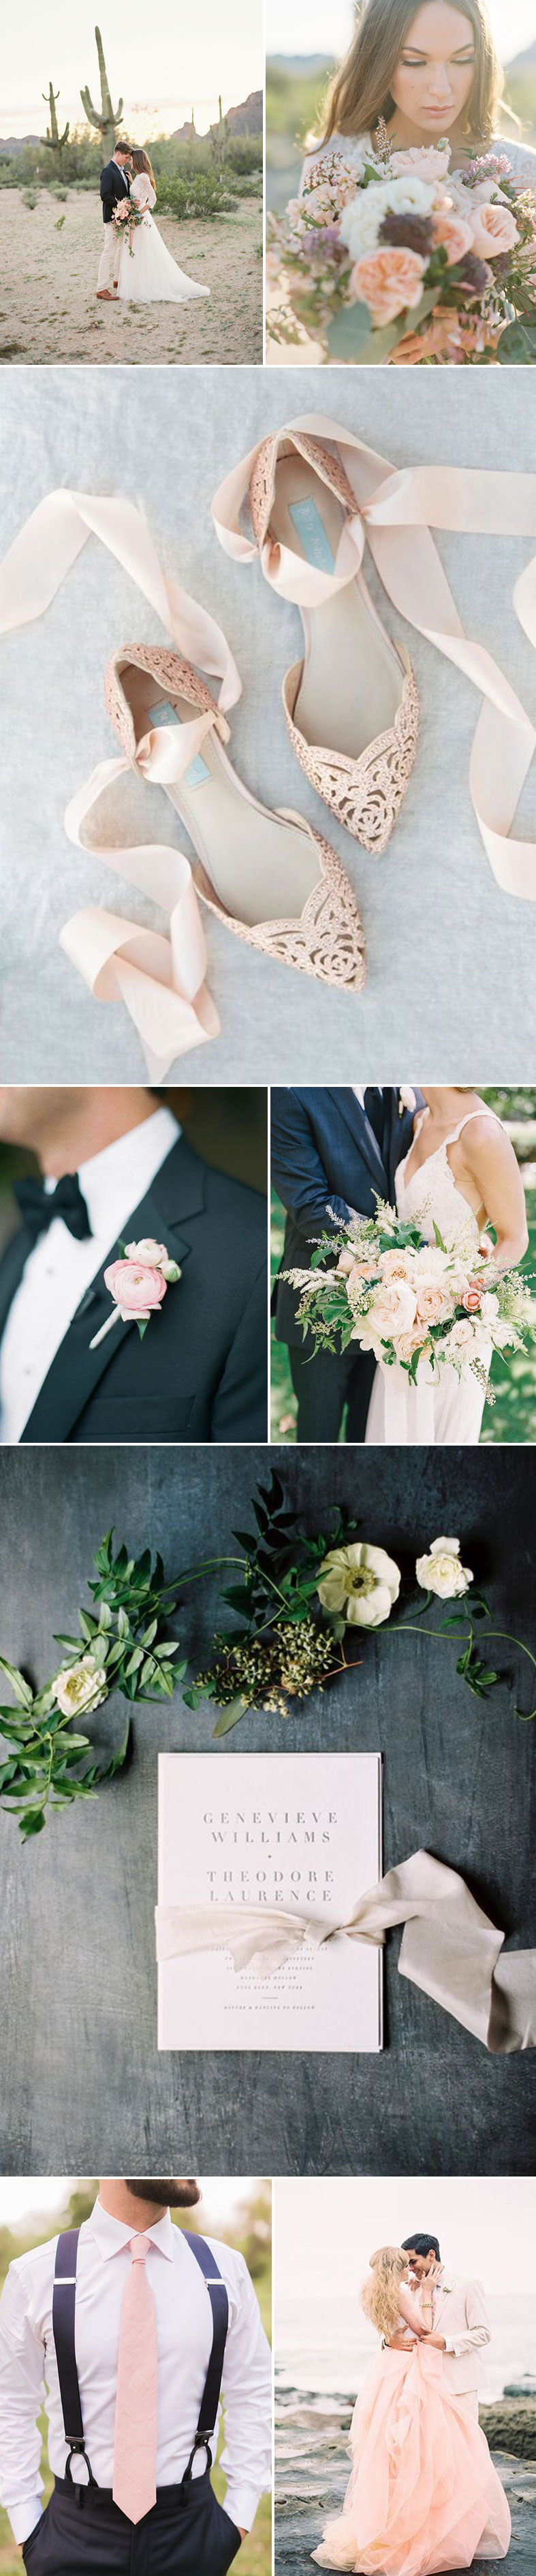 Blush, Ivory Wedding